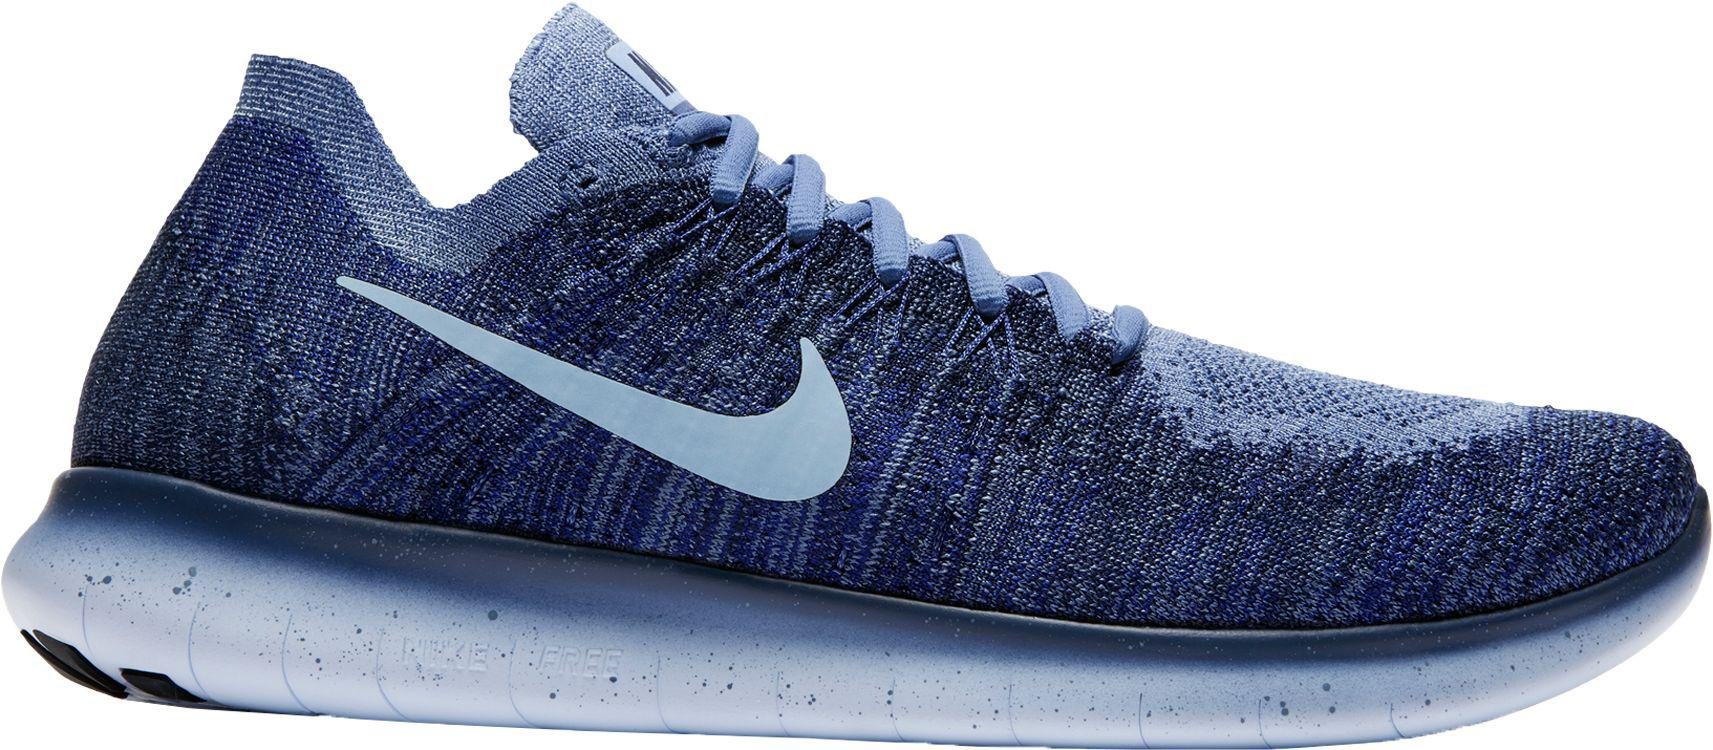 8f805ee6ce77 Lyst - Nike Free Rn Flyknit 2017 Running Shoes in Blue for Men